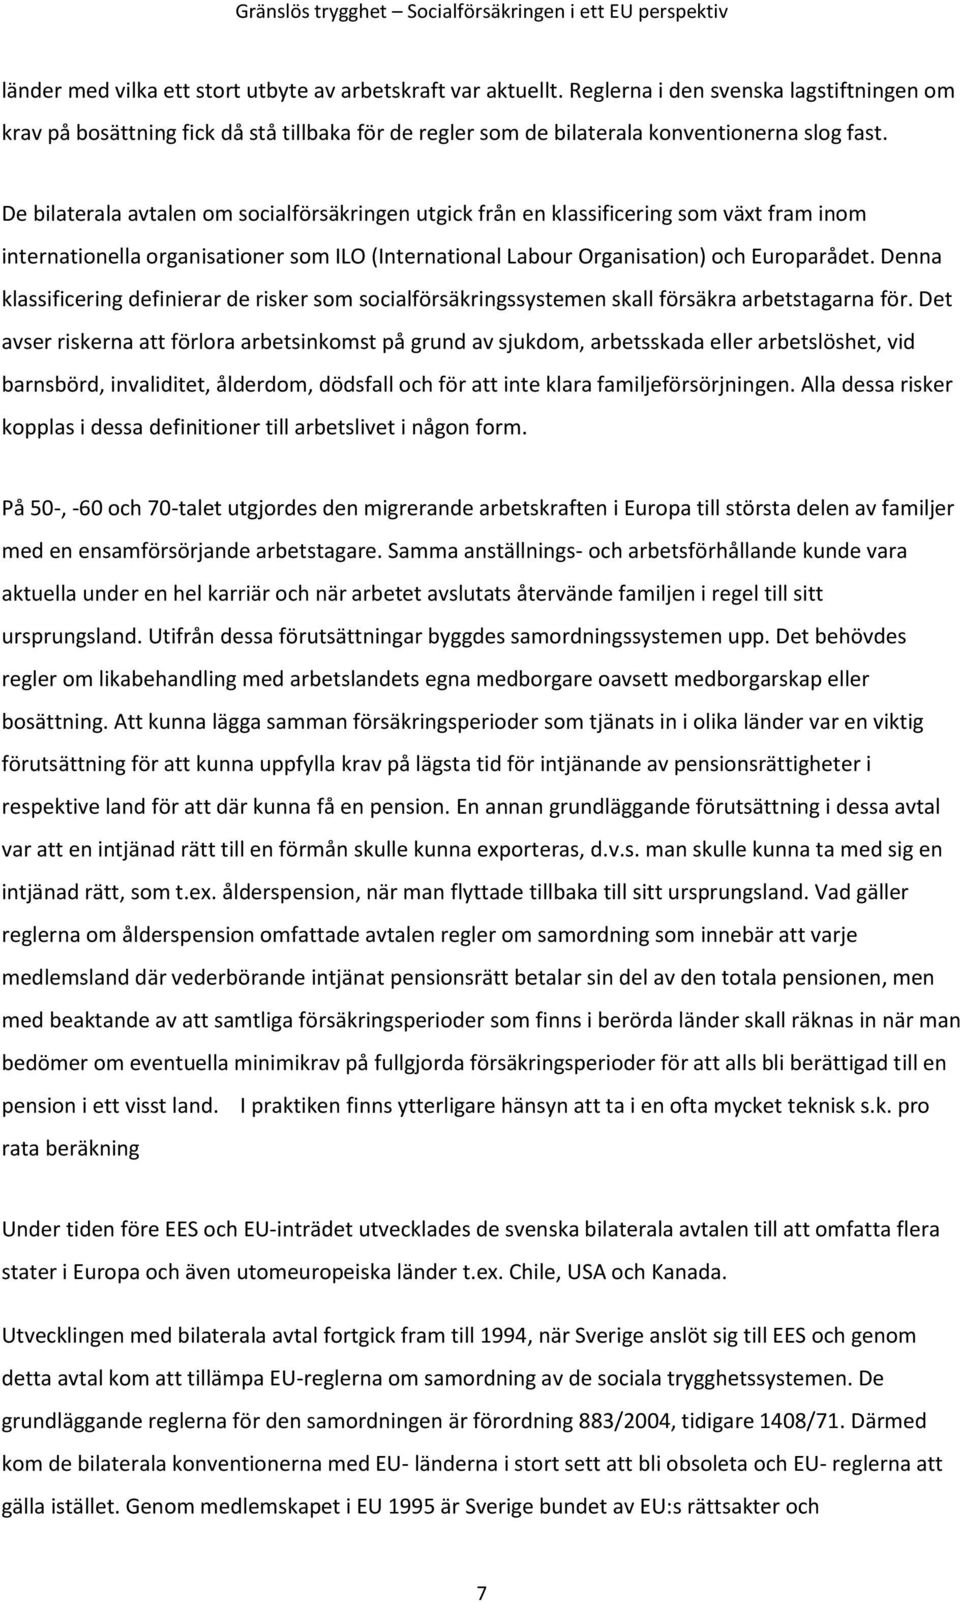 De bilaterala avtalen om socialförsäkringen utgick från en klassificering som växt fram inom internationella organisationer som ILO (International Labour Organisation) och Europarådet.